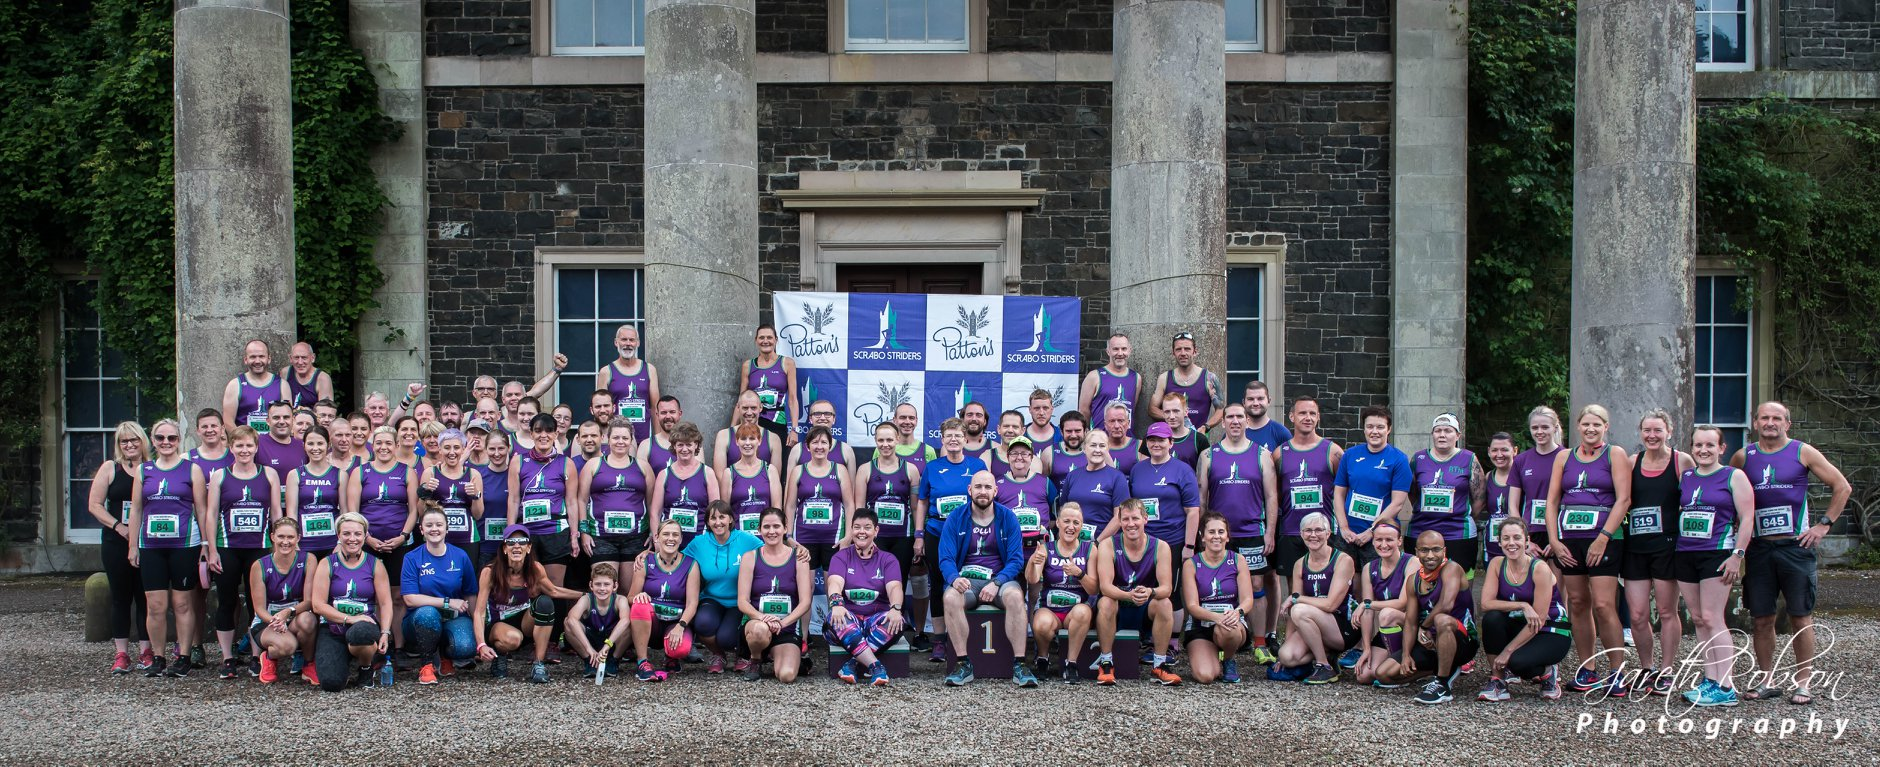 Scrabo Striders at Run The Trails 2019.jpg